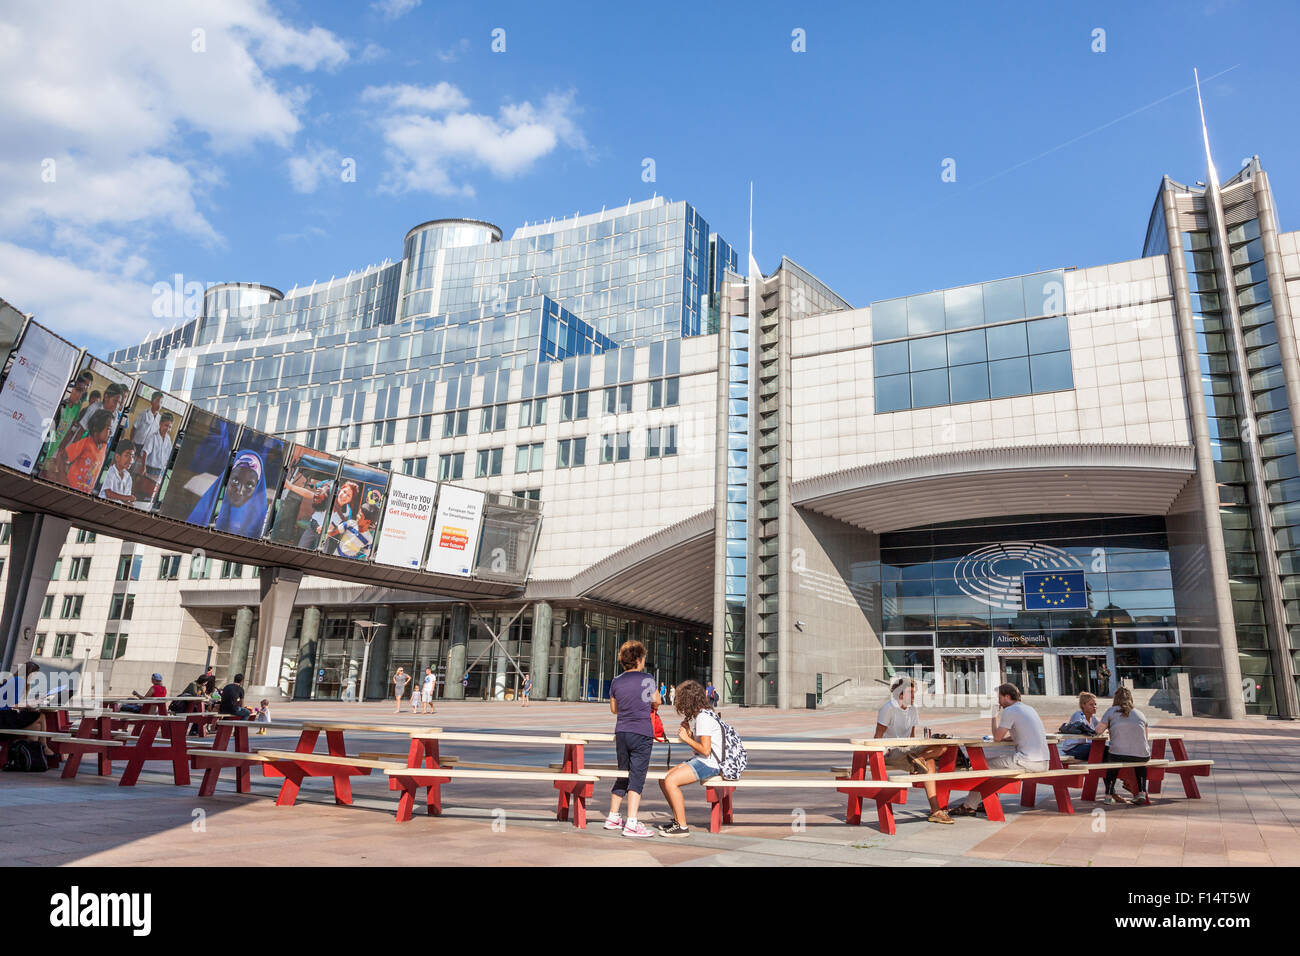 European Parliament office buildings at the Espace Leopold (Leopold Square). August 21, 2015 in Brussels, Belgium - Stock Image